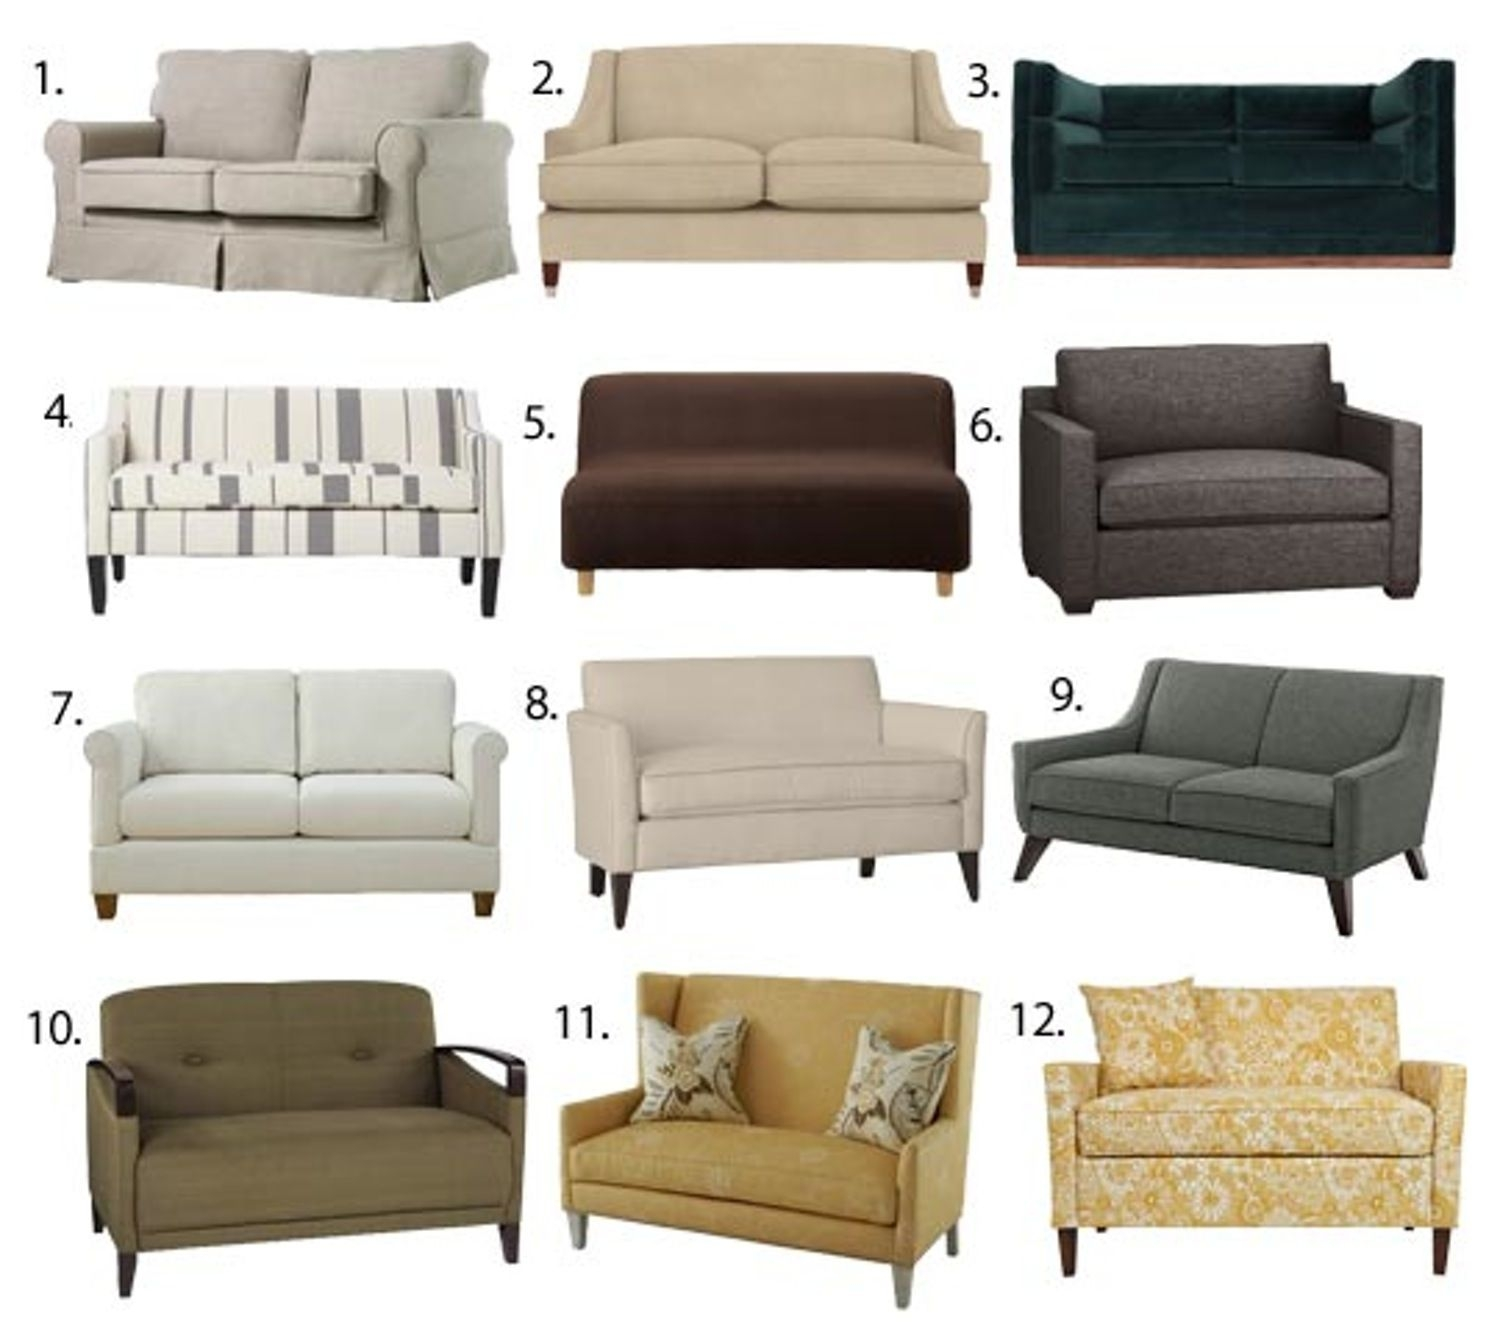 Small Space Seating Sofas Loveseats Under 60 Inches Wide 1